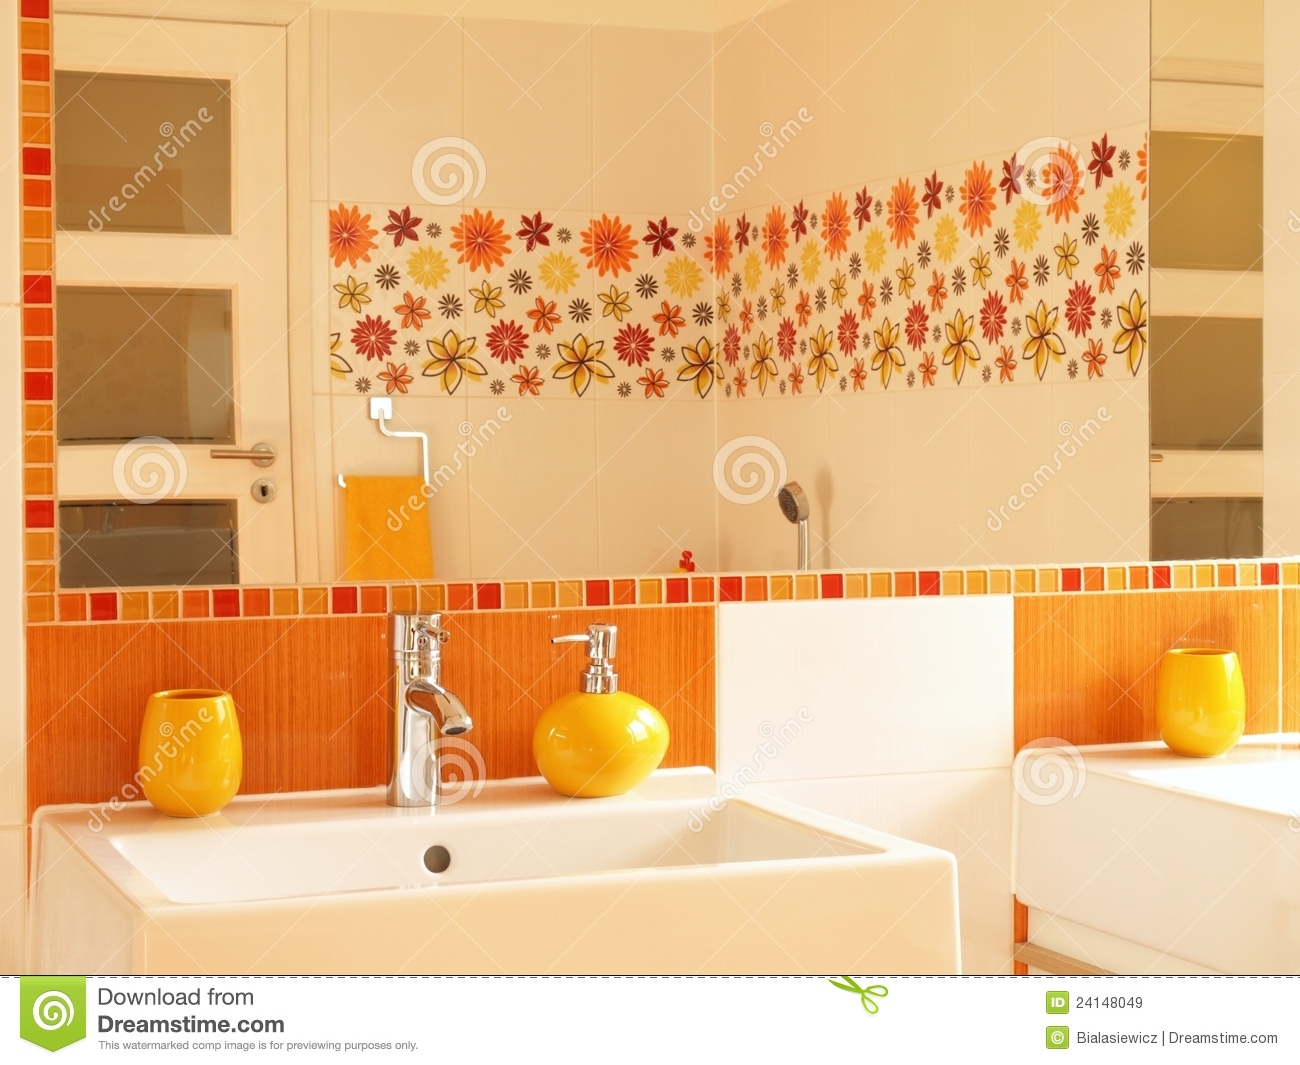 Modern Bathroom With Flower Decor Tiles Stock Image Image Of Furniture Tile 24148049